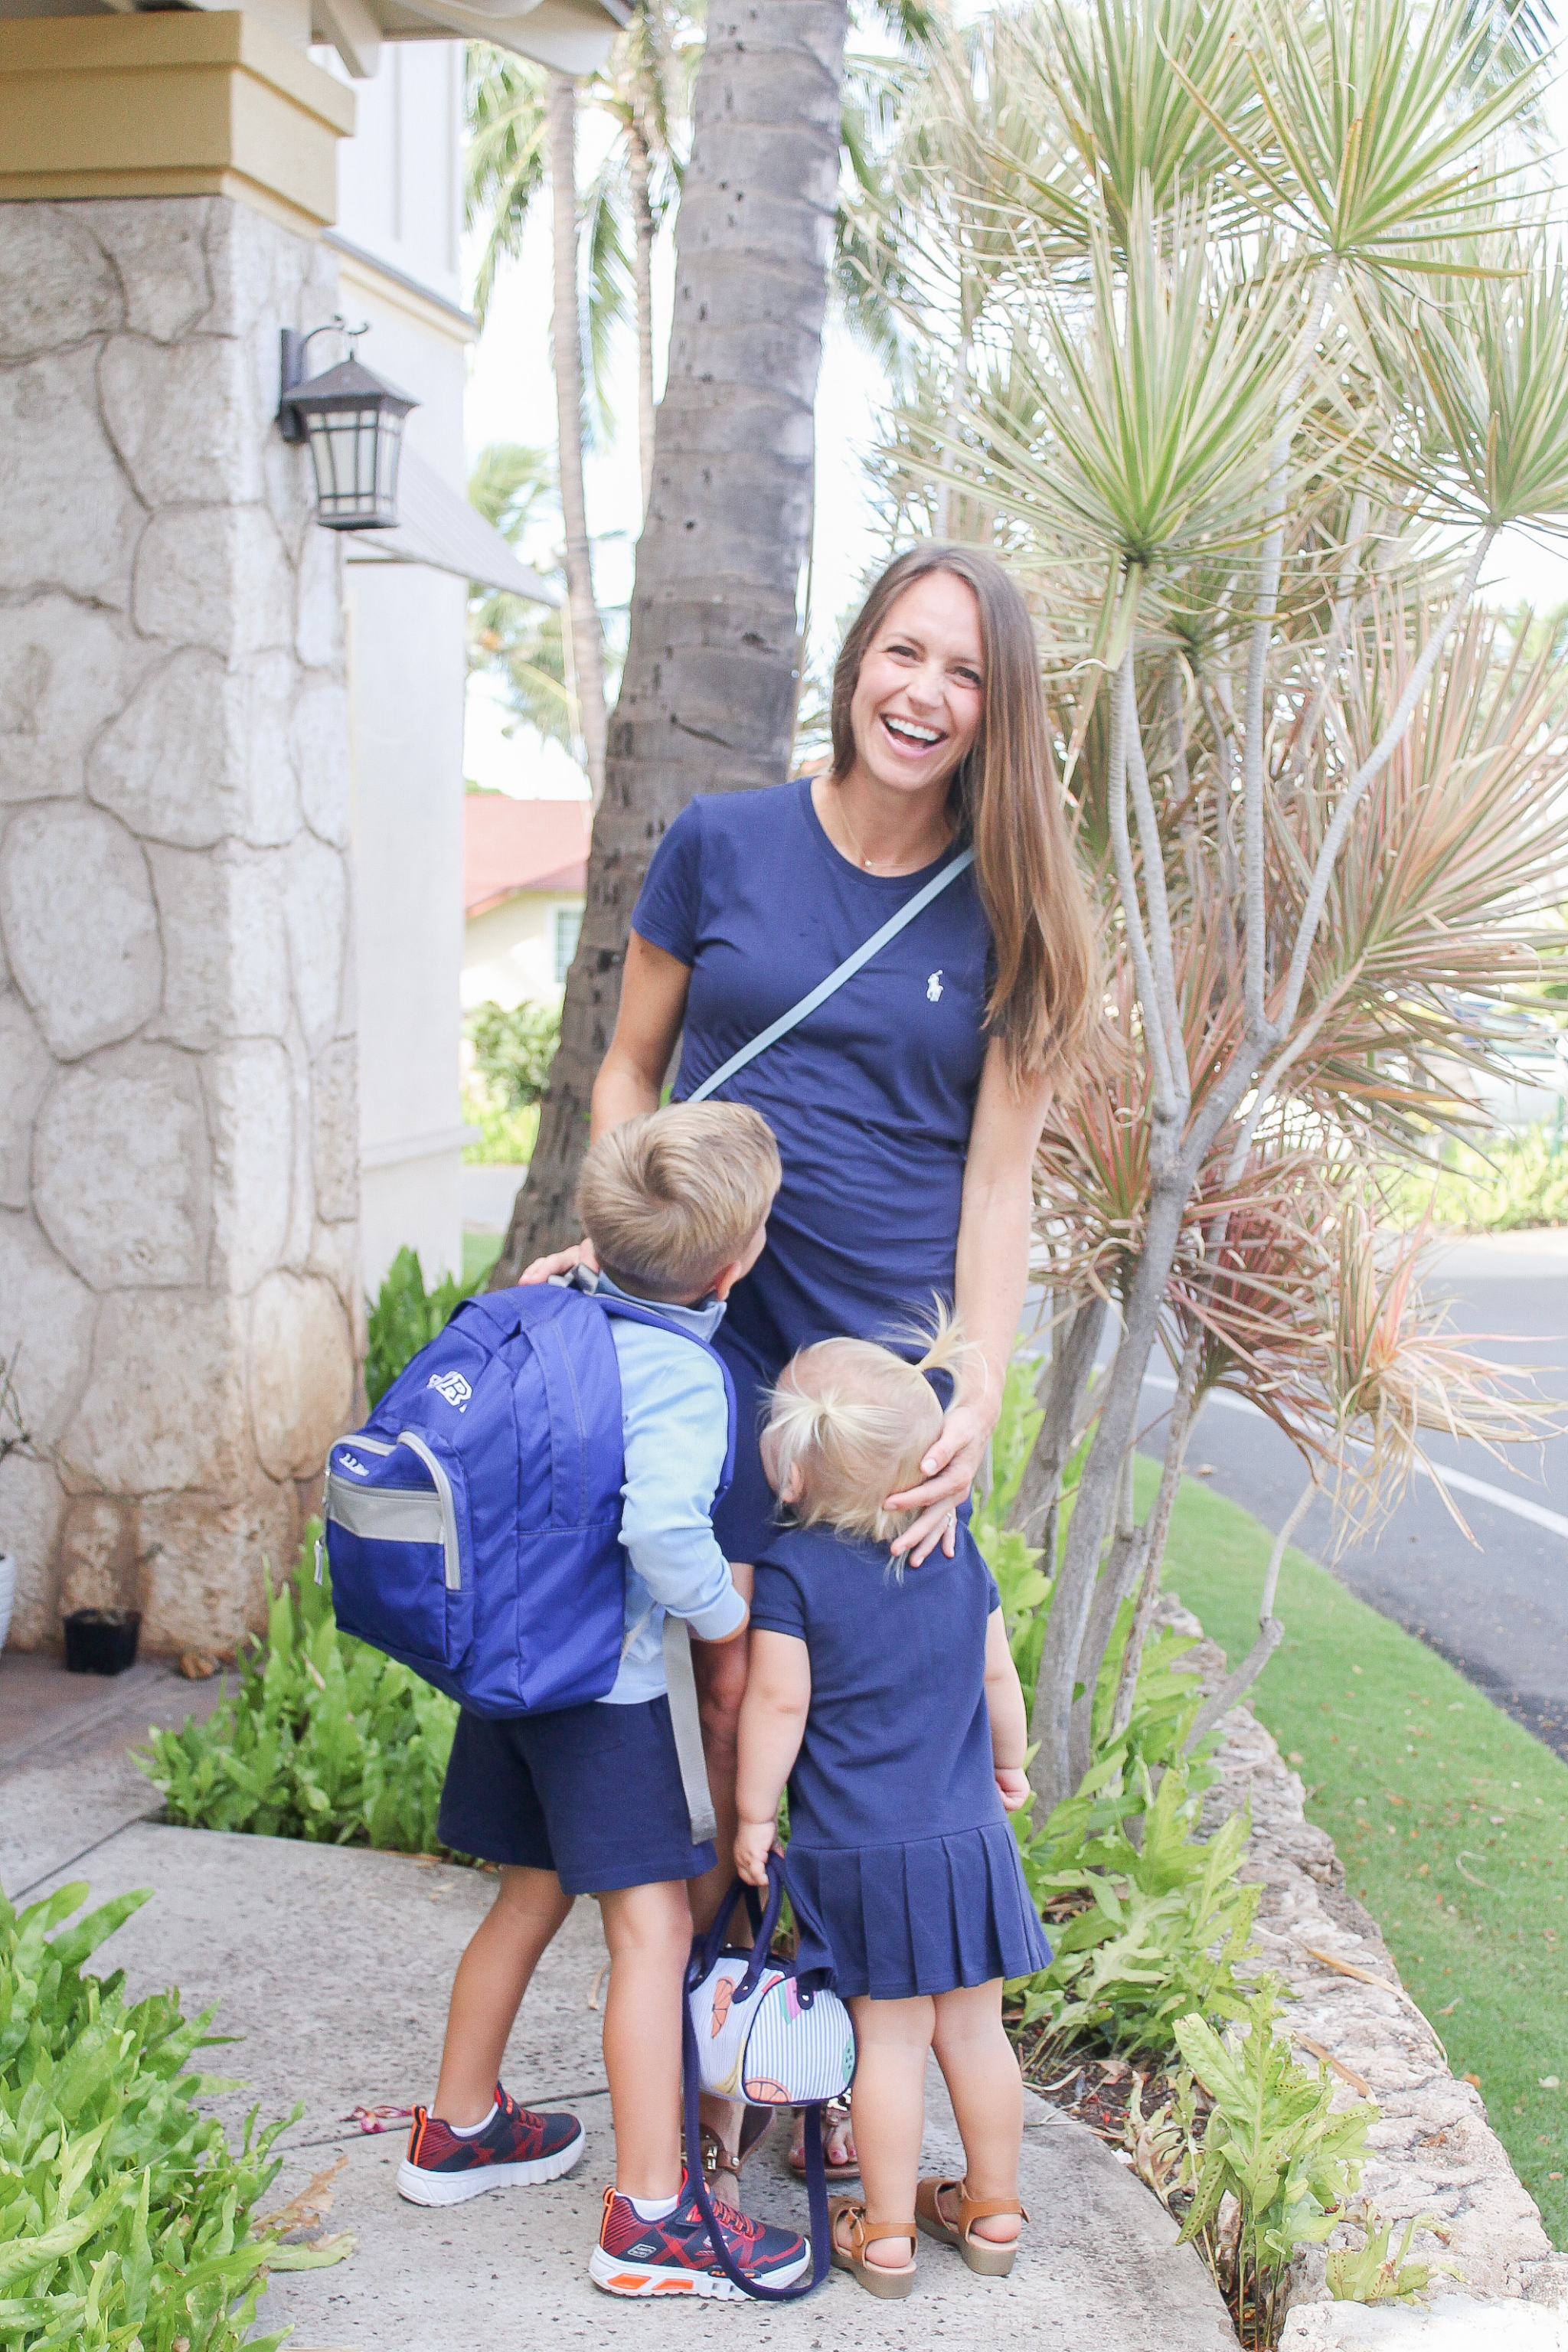 shopping at Waikele Premium Outlets - Simon Center Outlets - outlet mall Hawaii - Oahu outlet mall - back to school shopping Hawaii - outlet mall in hawaii - polo ralph lauren outlet hawaii - back to school style - pregnancy style - maternity style - 20 weeks pregnant - polo dress - toddler style - toddler outfit ideas - sibling outfits